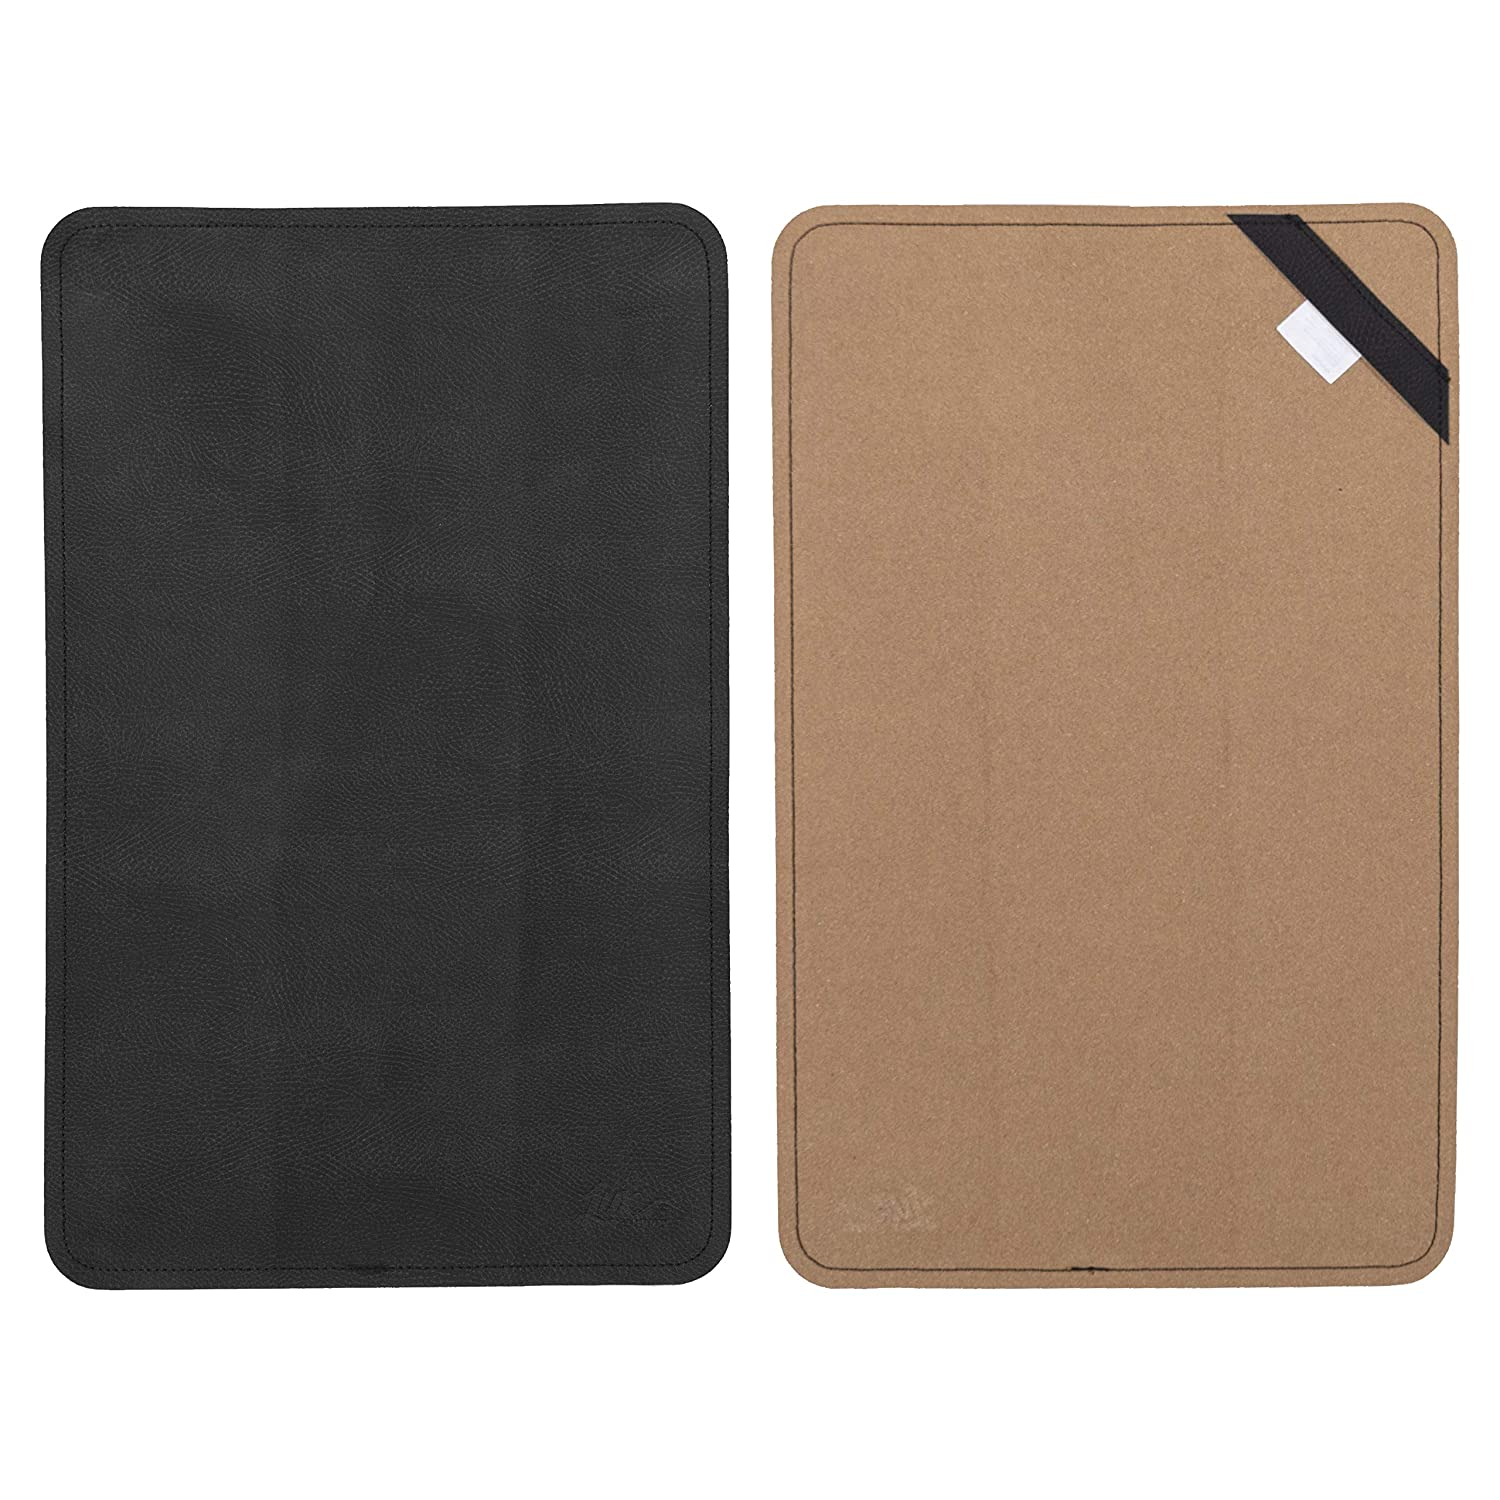 Lux Supply Co. Vegan Leather Baby Mat and Place Mat! 14x22